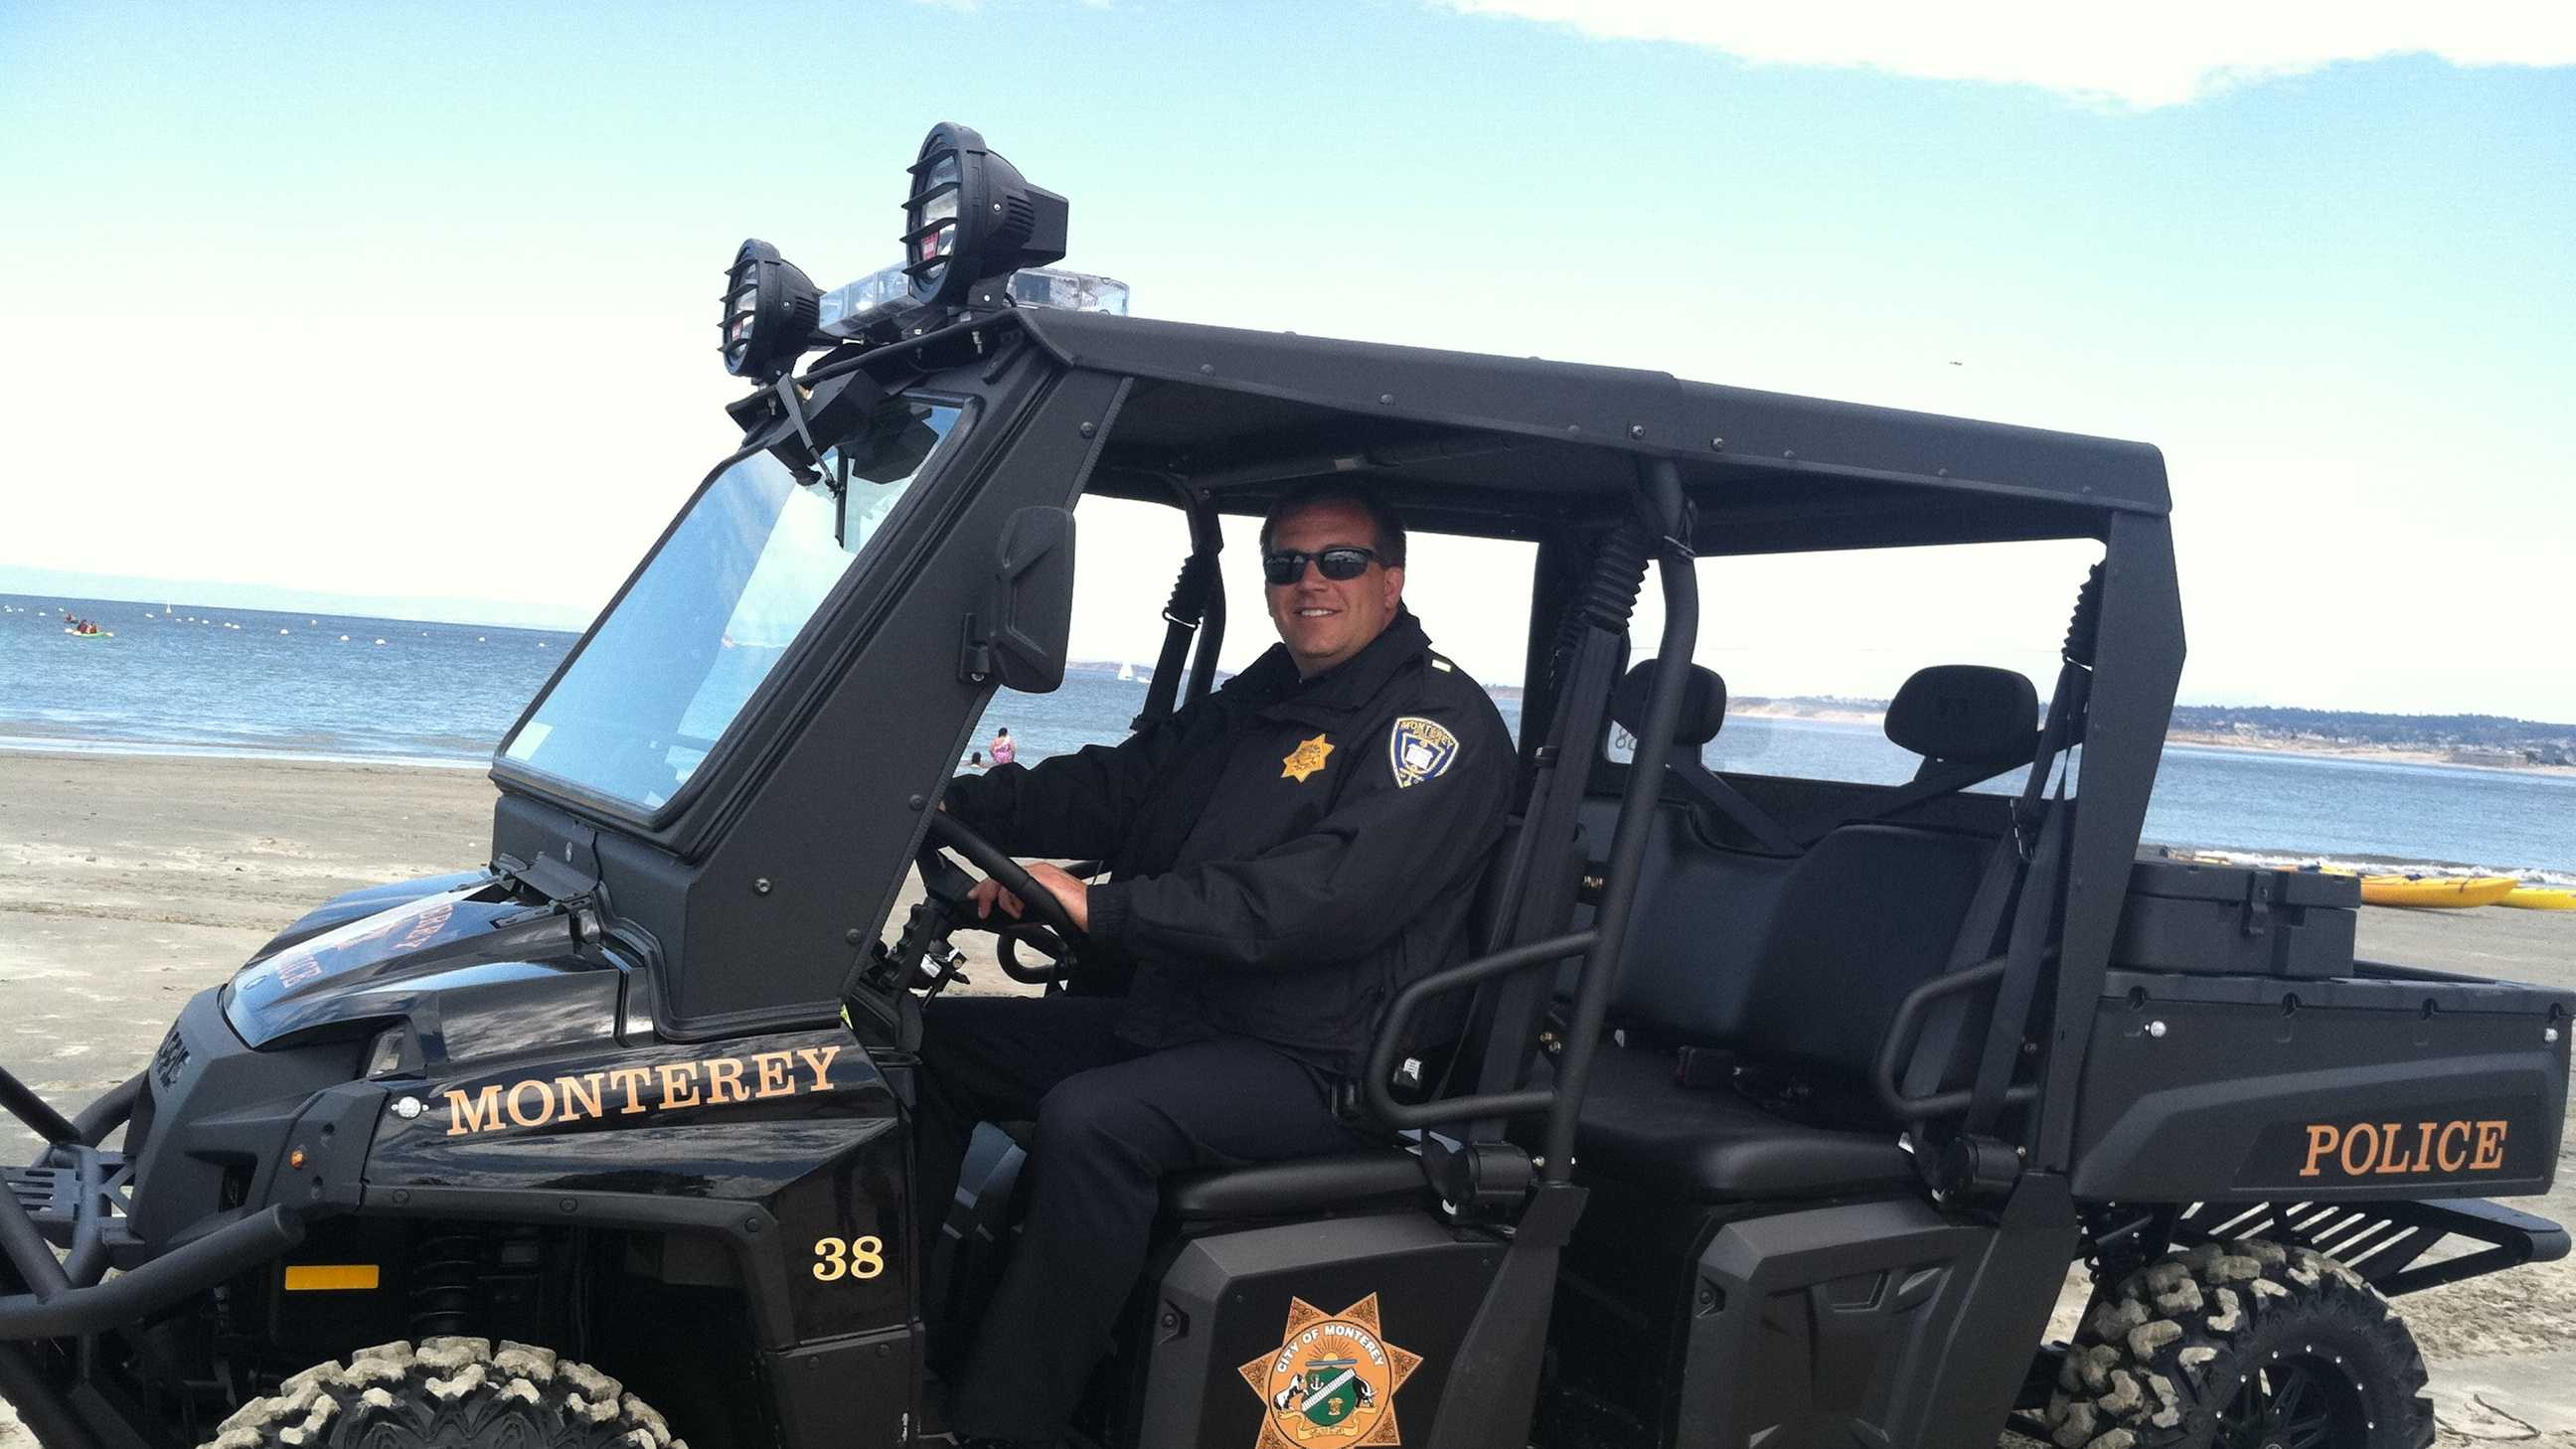 The Monterey Police Department recently added a Polaris Ranger 900 Utility Terrain Vehicle to its fleet.